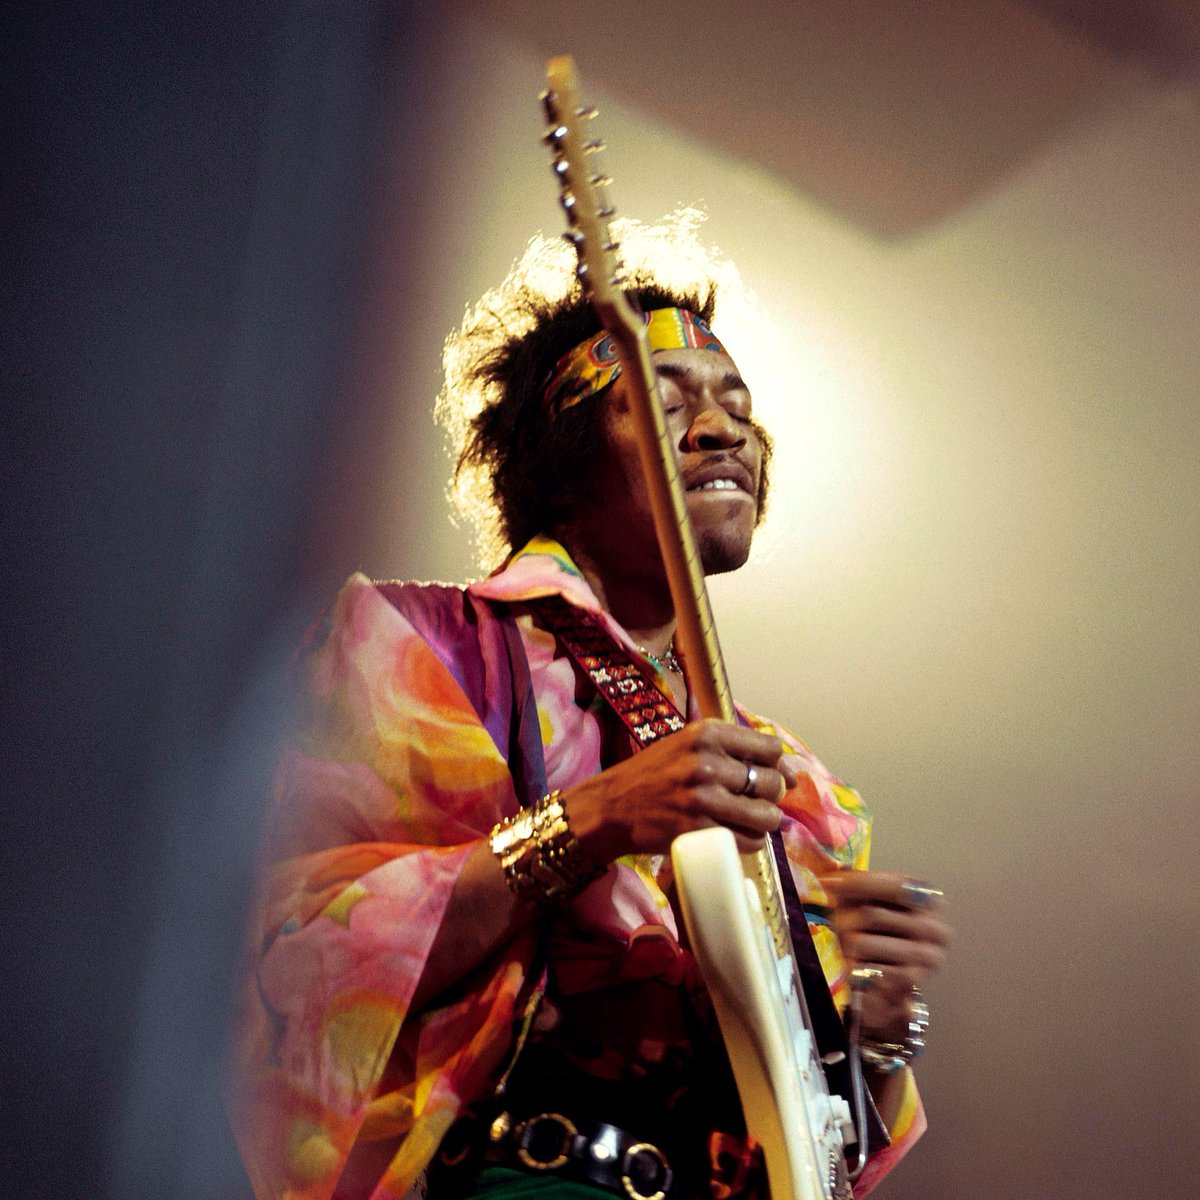 """""""Music makes me high onstage, and that's the truth. It's almost like being addicted to music. You see, onstage I forget everything, even the pain.""""   50 years ago today the world lost legendary guitarist and rock icon Jimi Hendrix. Photo via Getty/David Redfern. https://t.co/Q4hb0DayCc"""